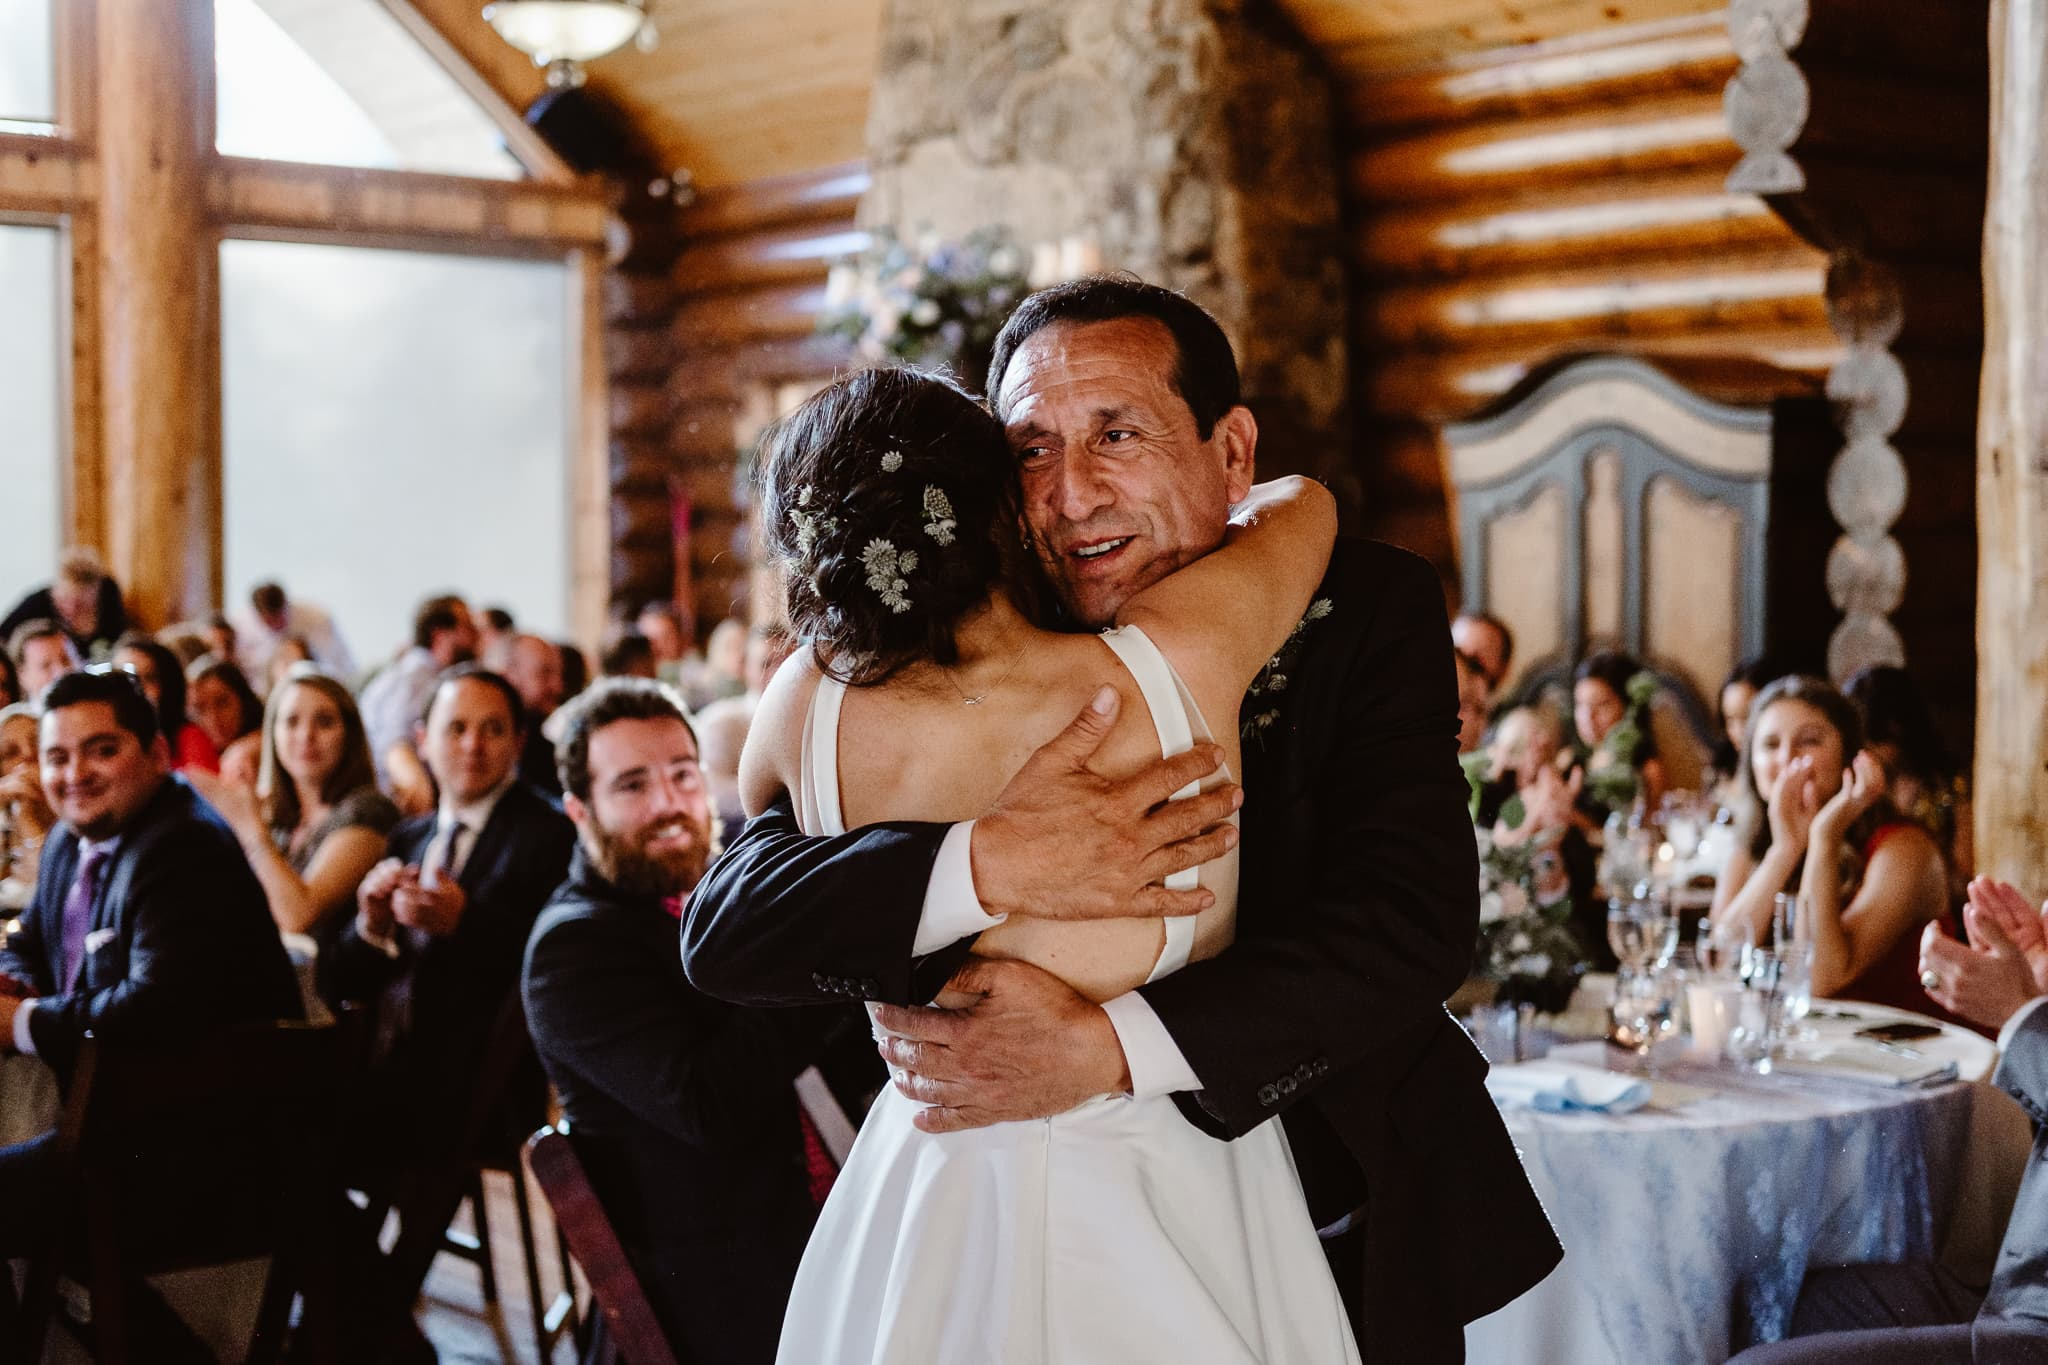 Bride dancing with her father at Breckenridge Nordic Center wedding, Summit County wedding photographer